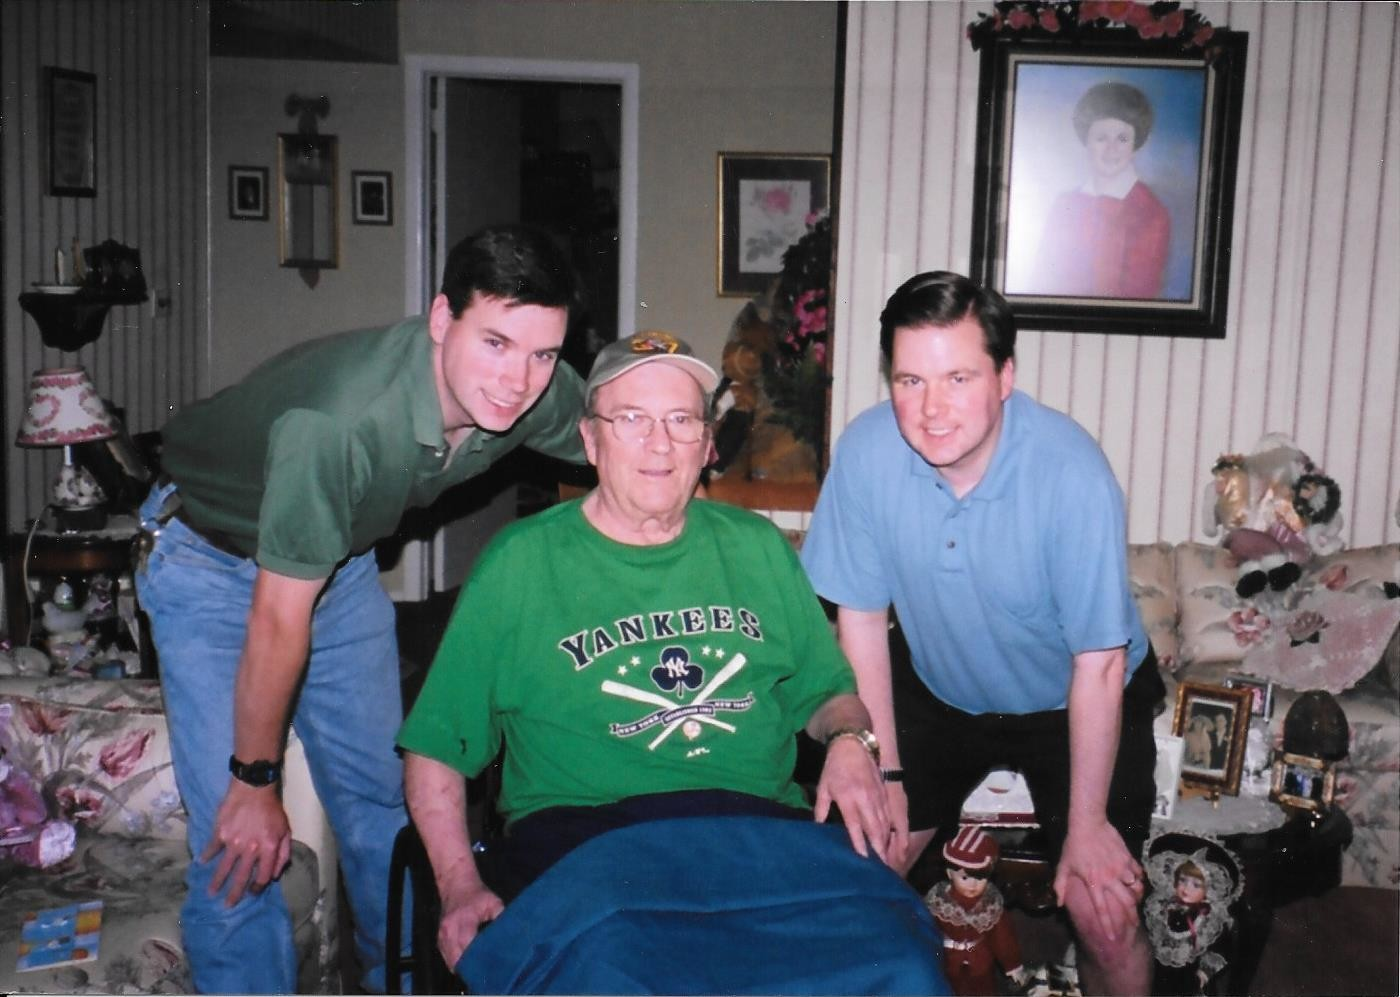 Tom McKevitt Sr., middle, pictured with his sons Scott, left, and Tom Jr., died on June 25. He was 75.